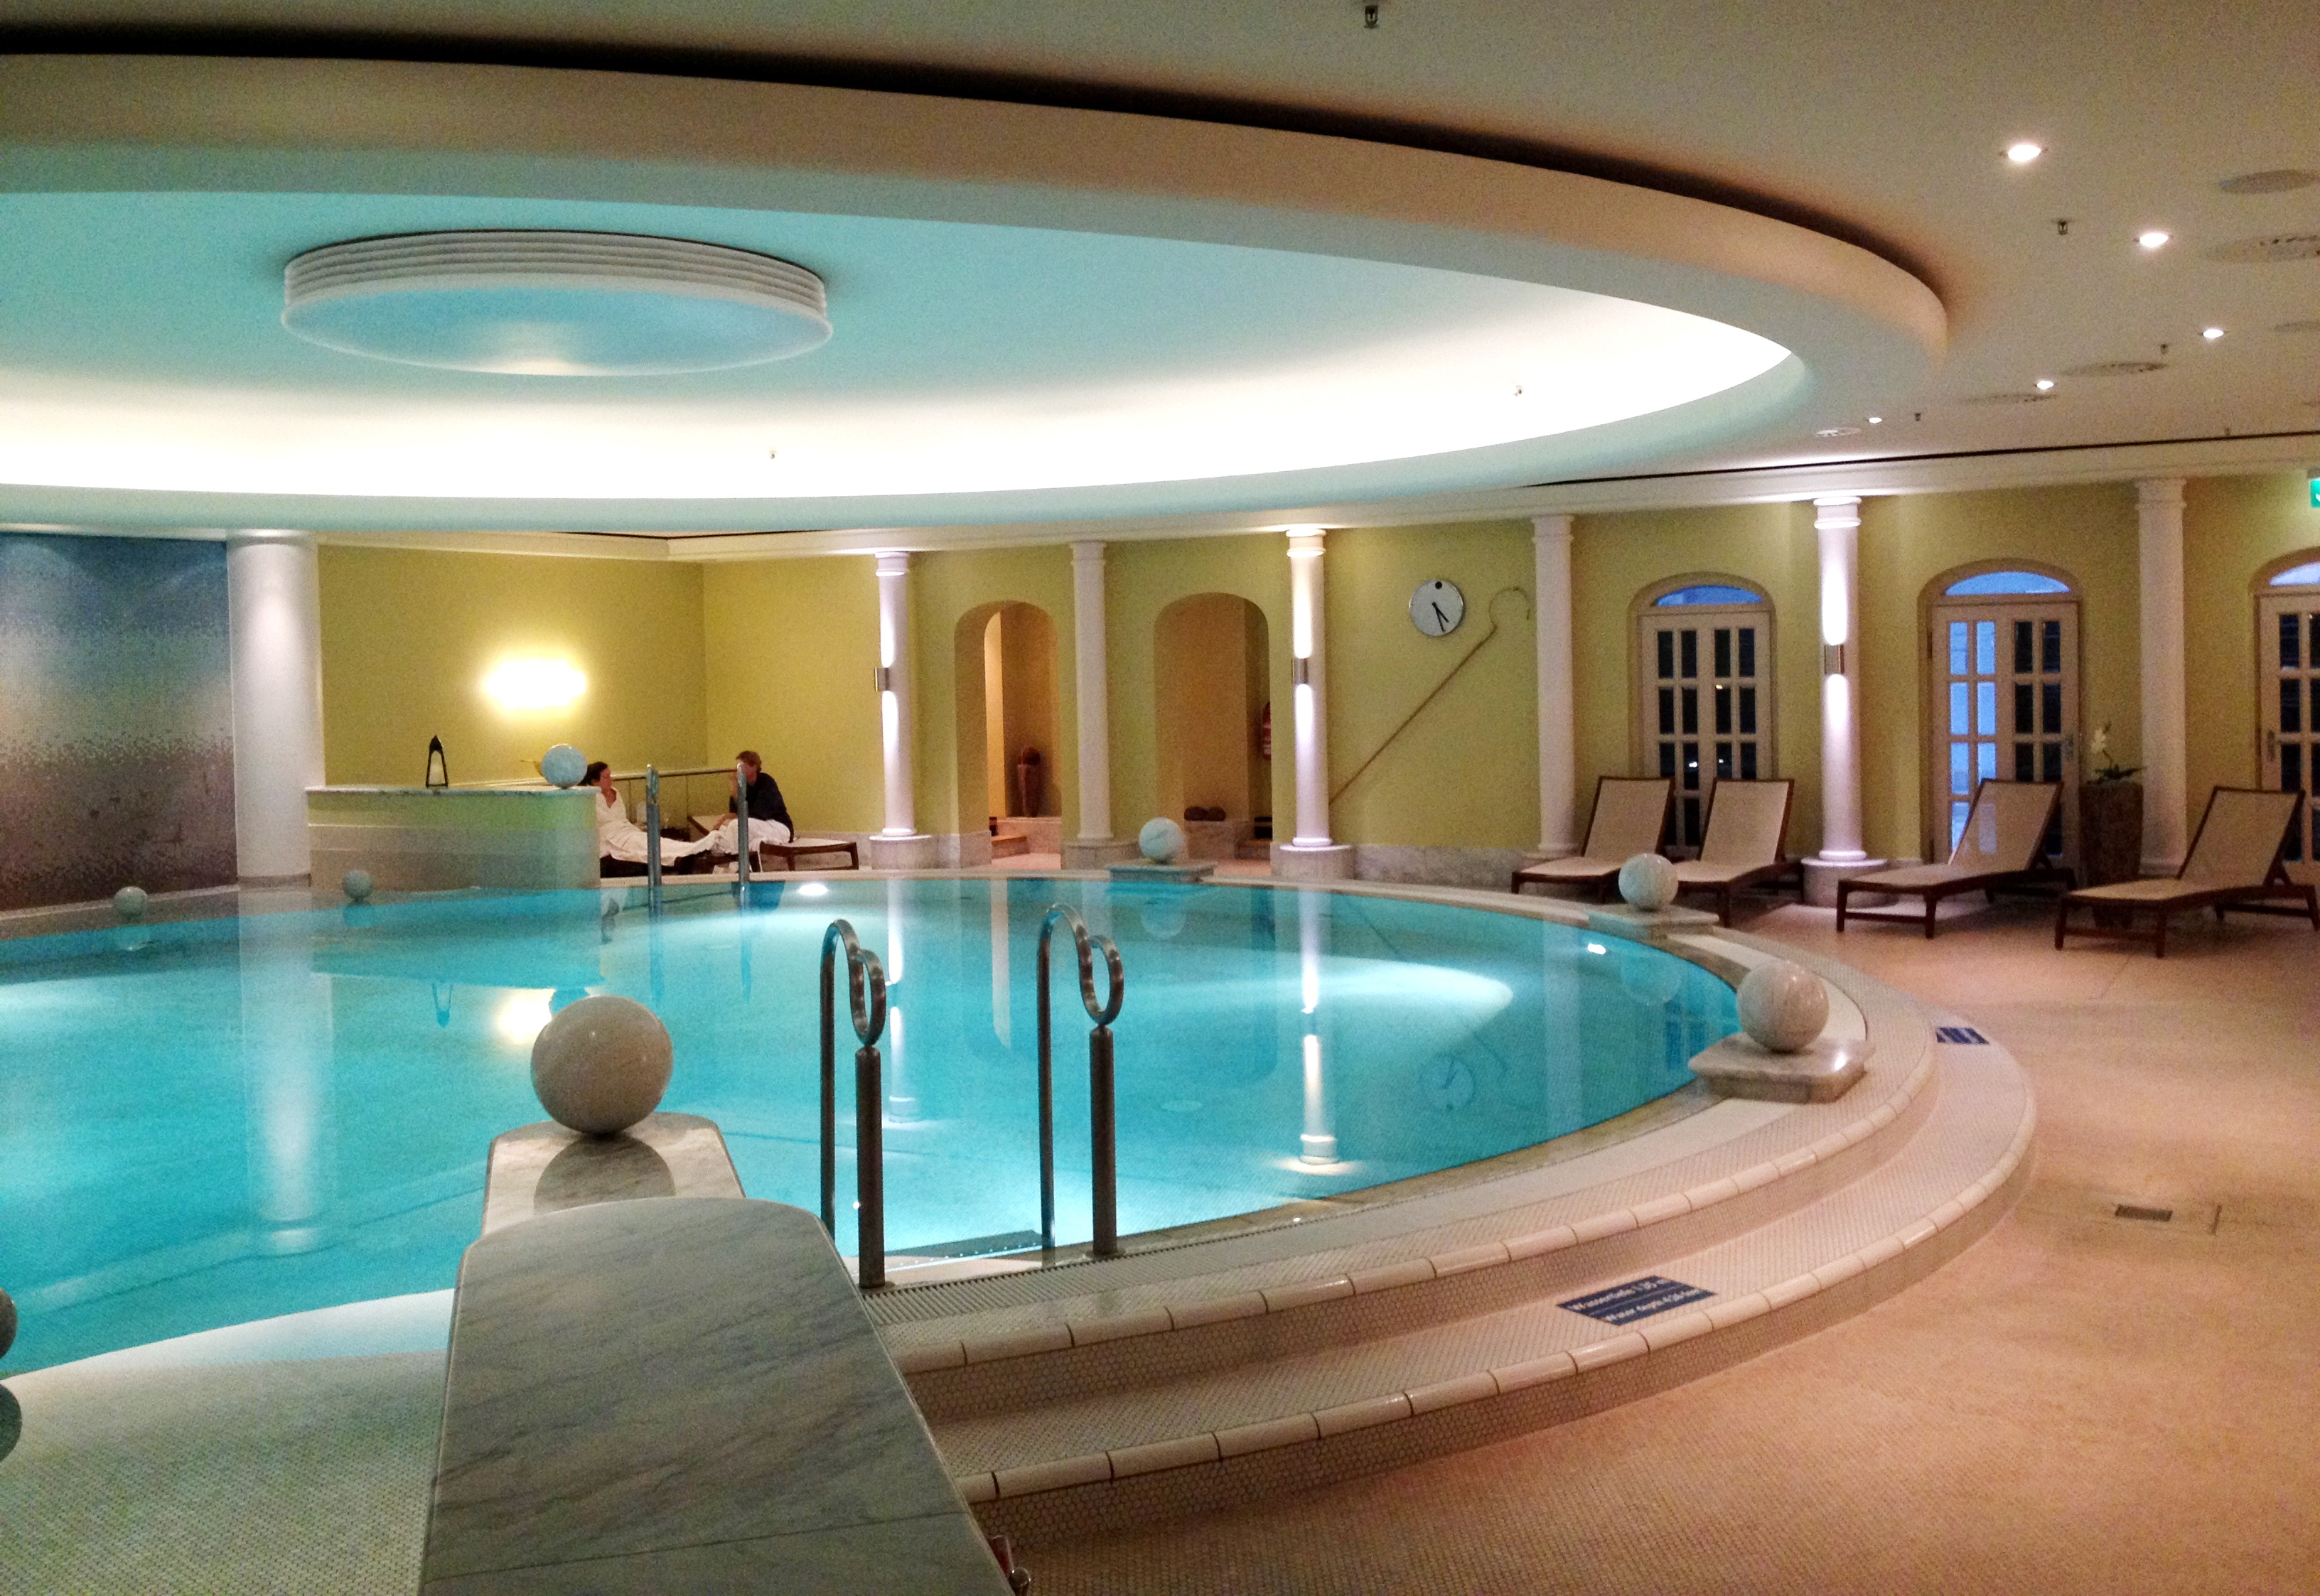 berlin-travelgrip-cityweekend- westin-pool